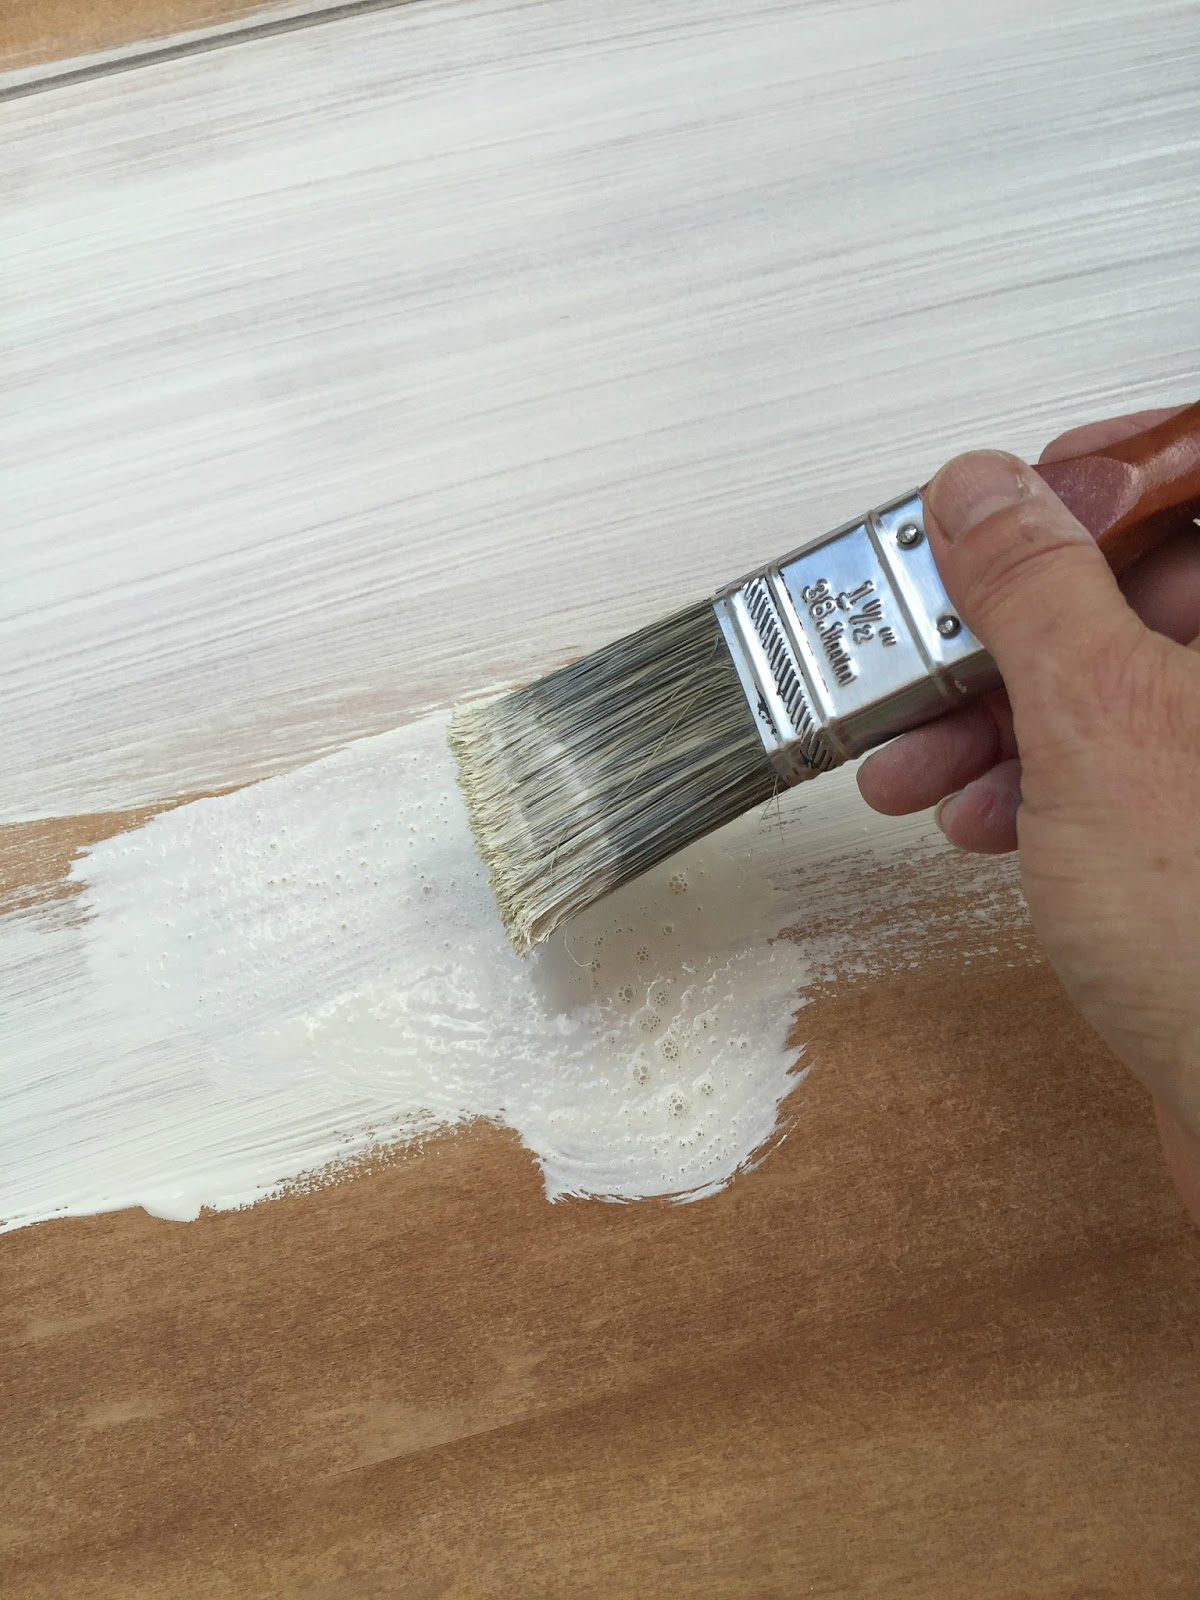 Dilute the paint with water to achieve a thin consistency